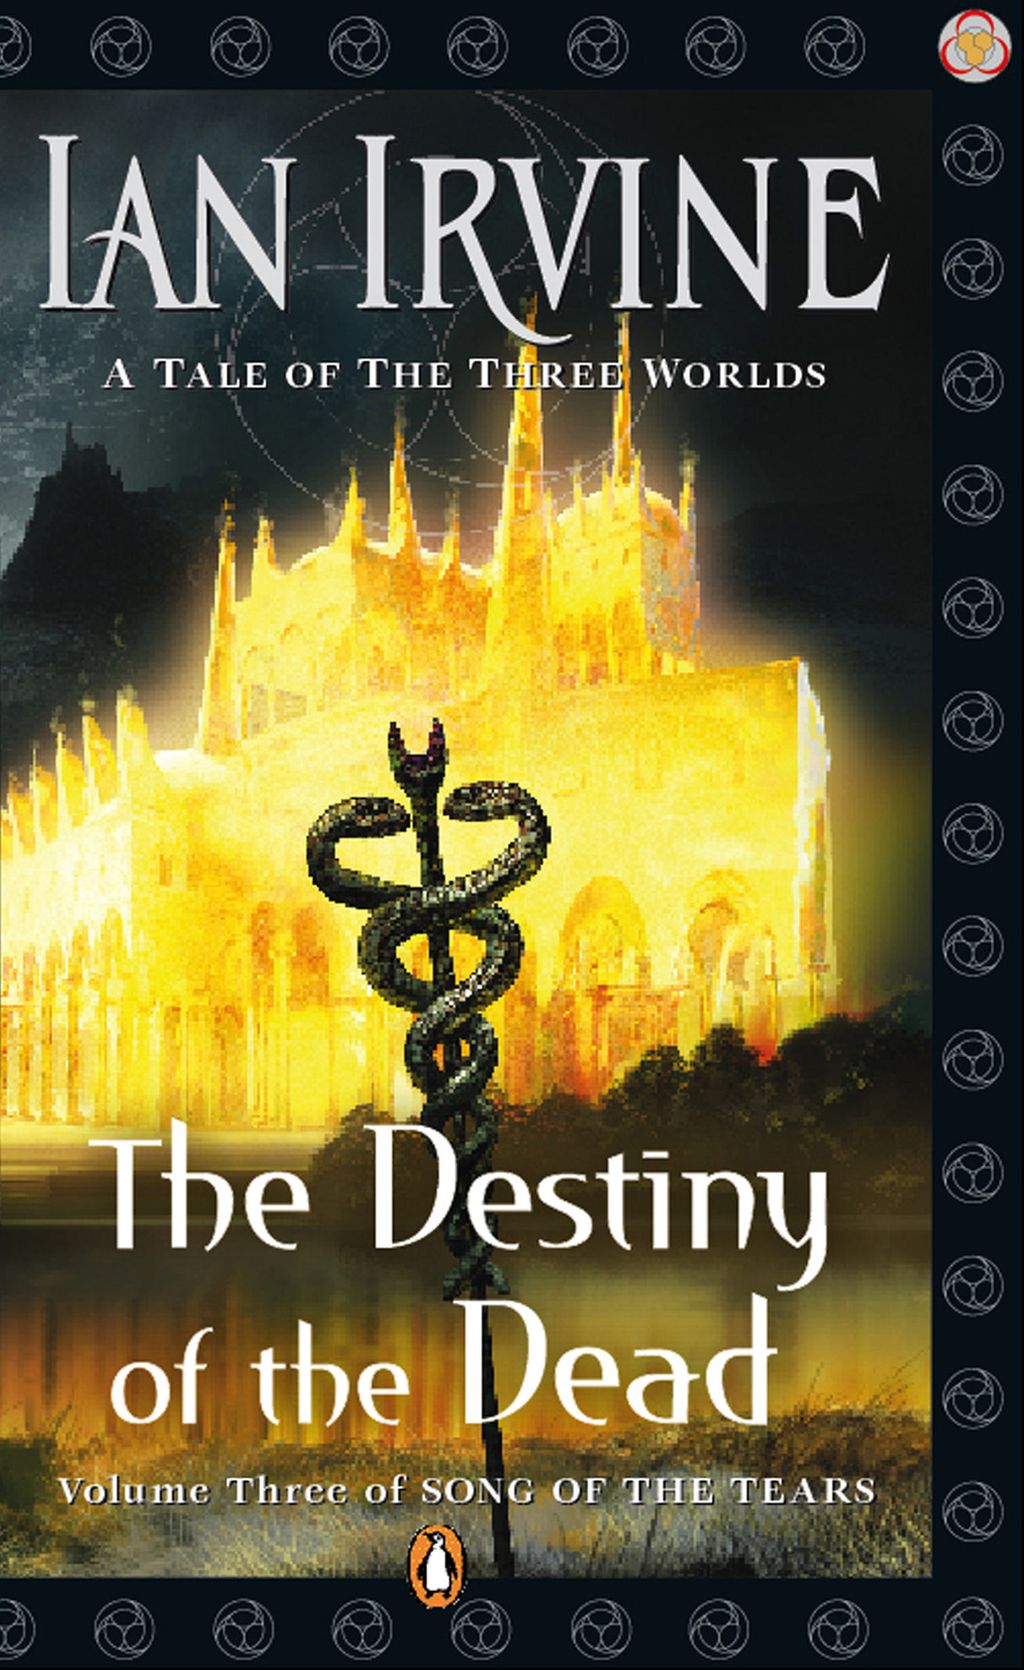 Destiny of the Dead: Song of the Tears Volume Three By: Ian Irvine